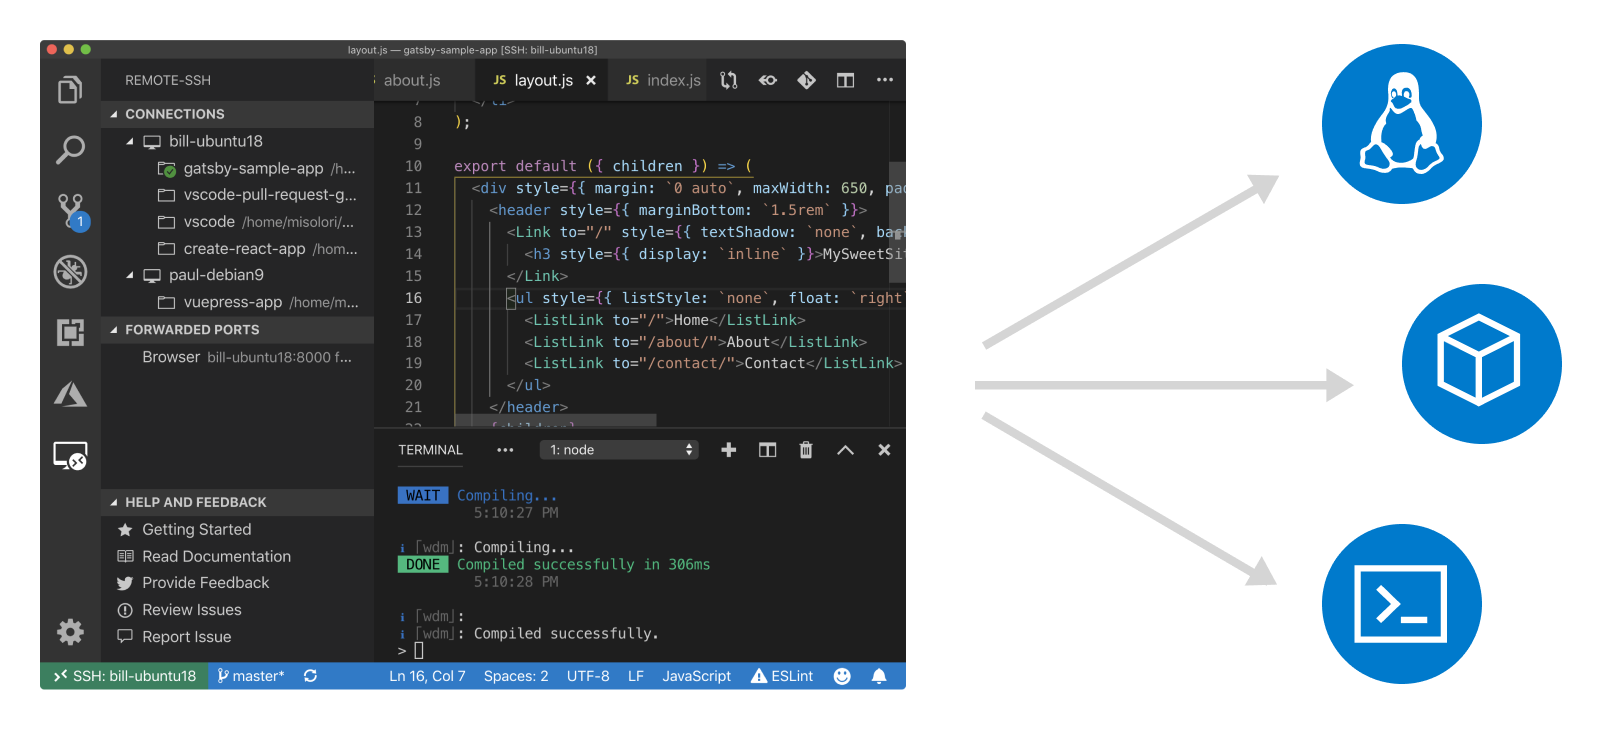 Visual Studio Code Remote Extensions for WSL, Containers, and SSH